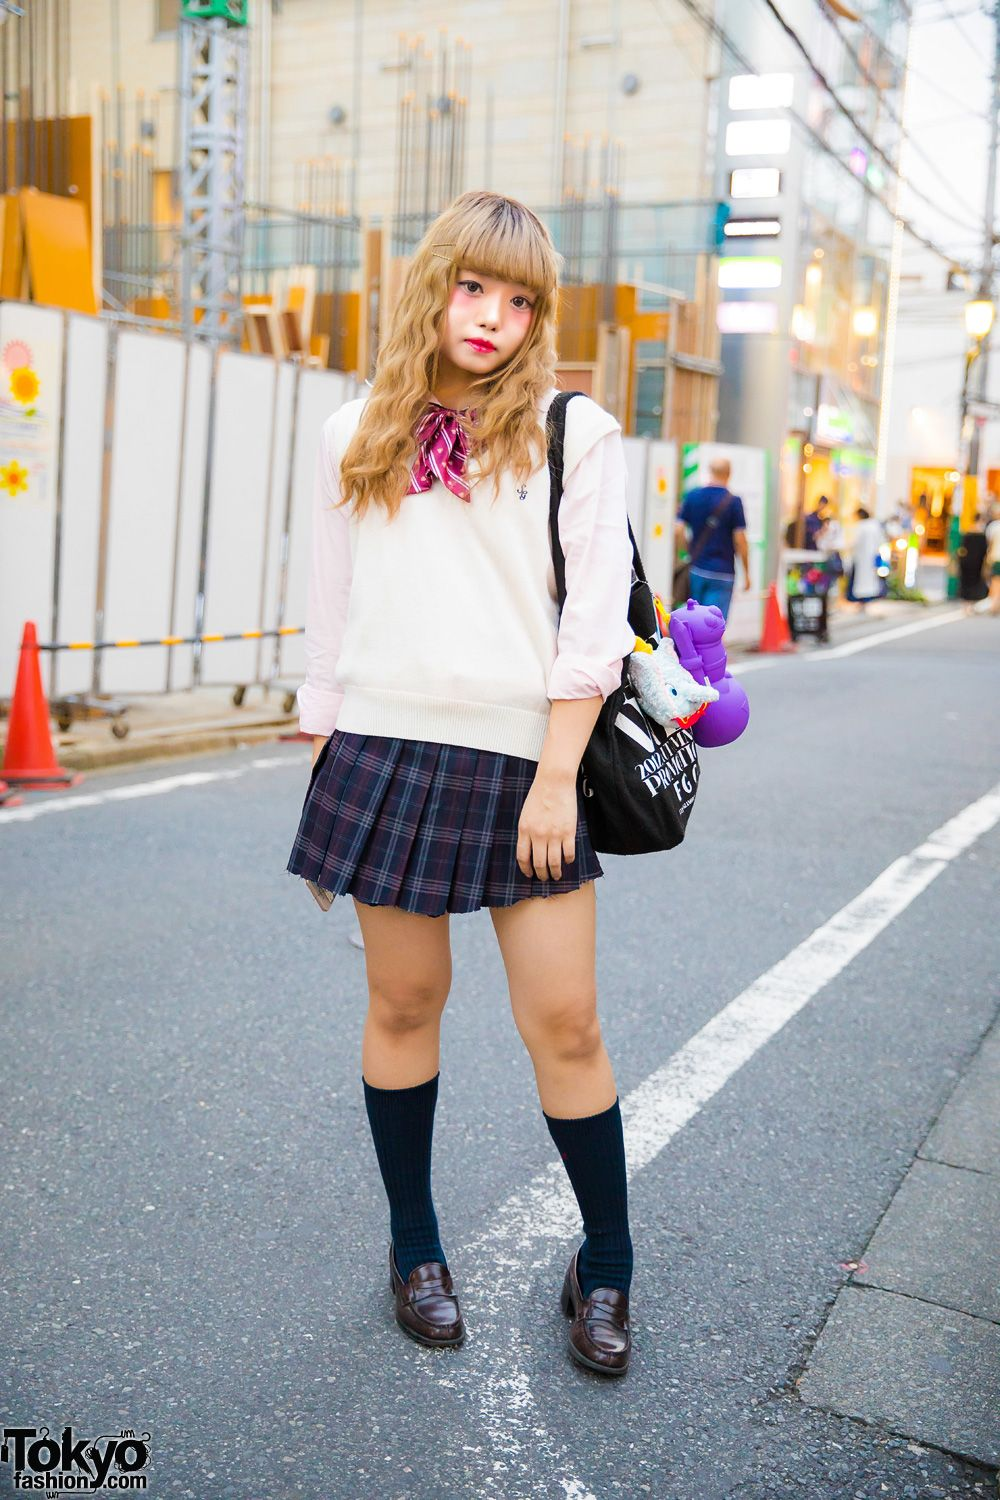 Harajuku Girl in Japanese School Uniform Street Style